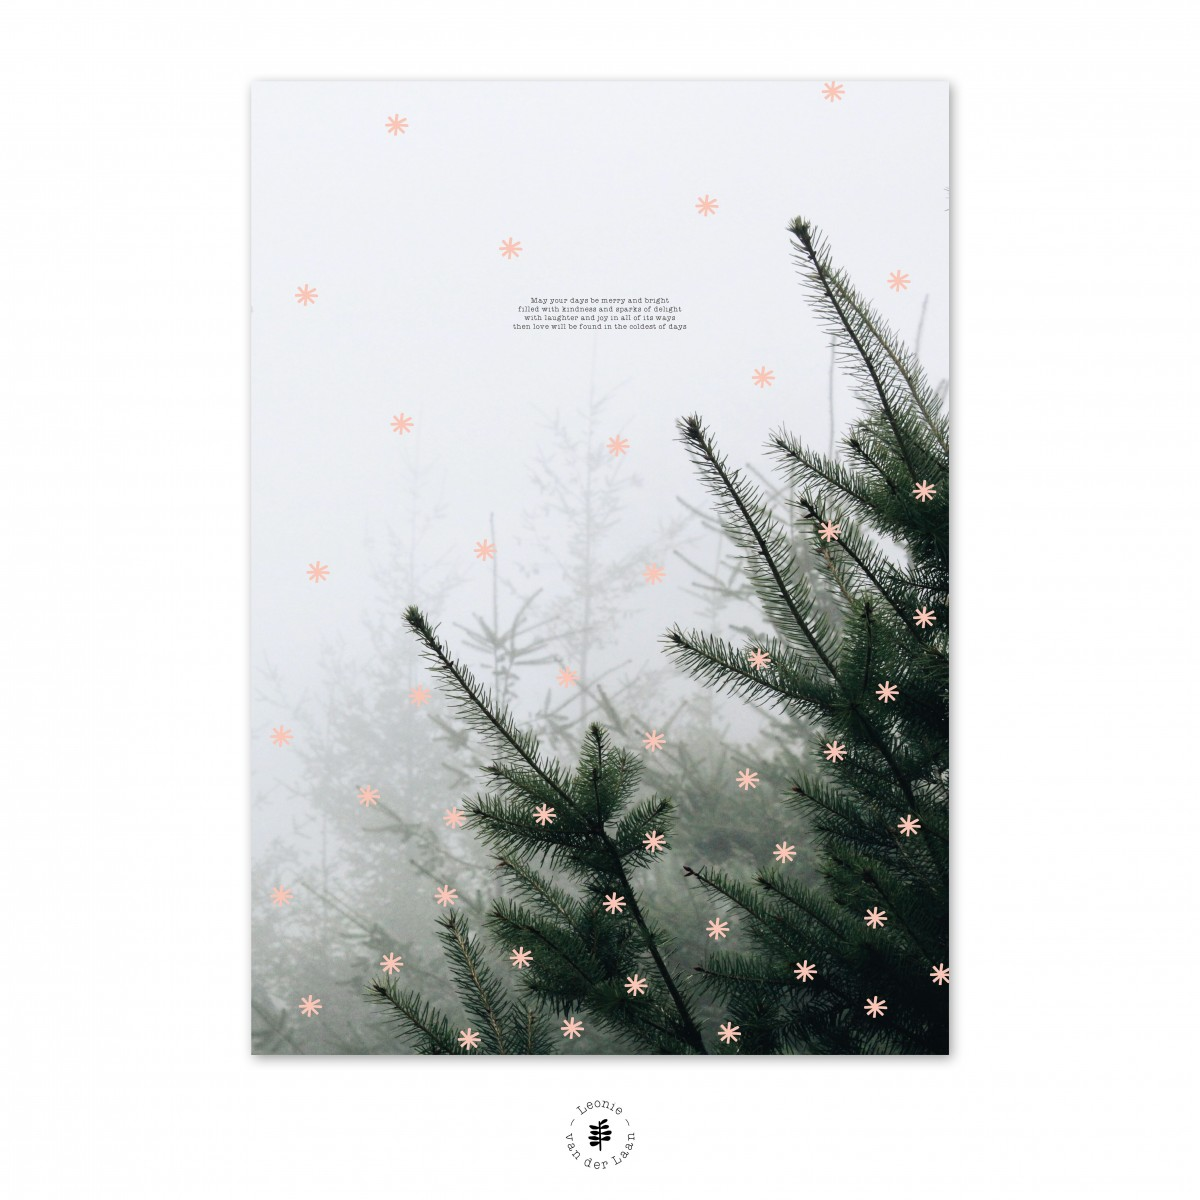 winter poster as christmas decoration, designed by Leonie van der Laan